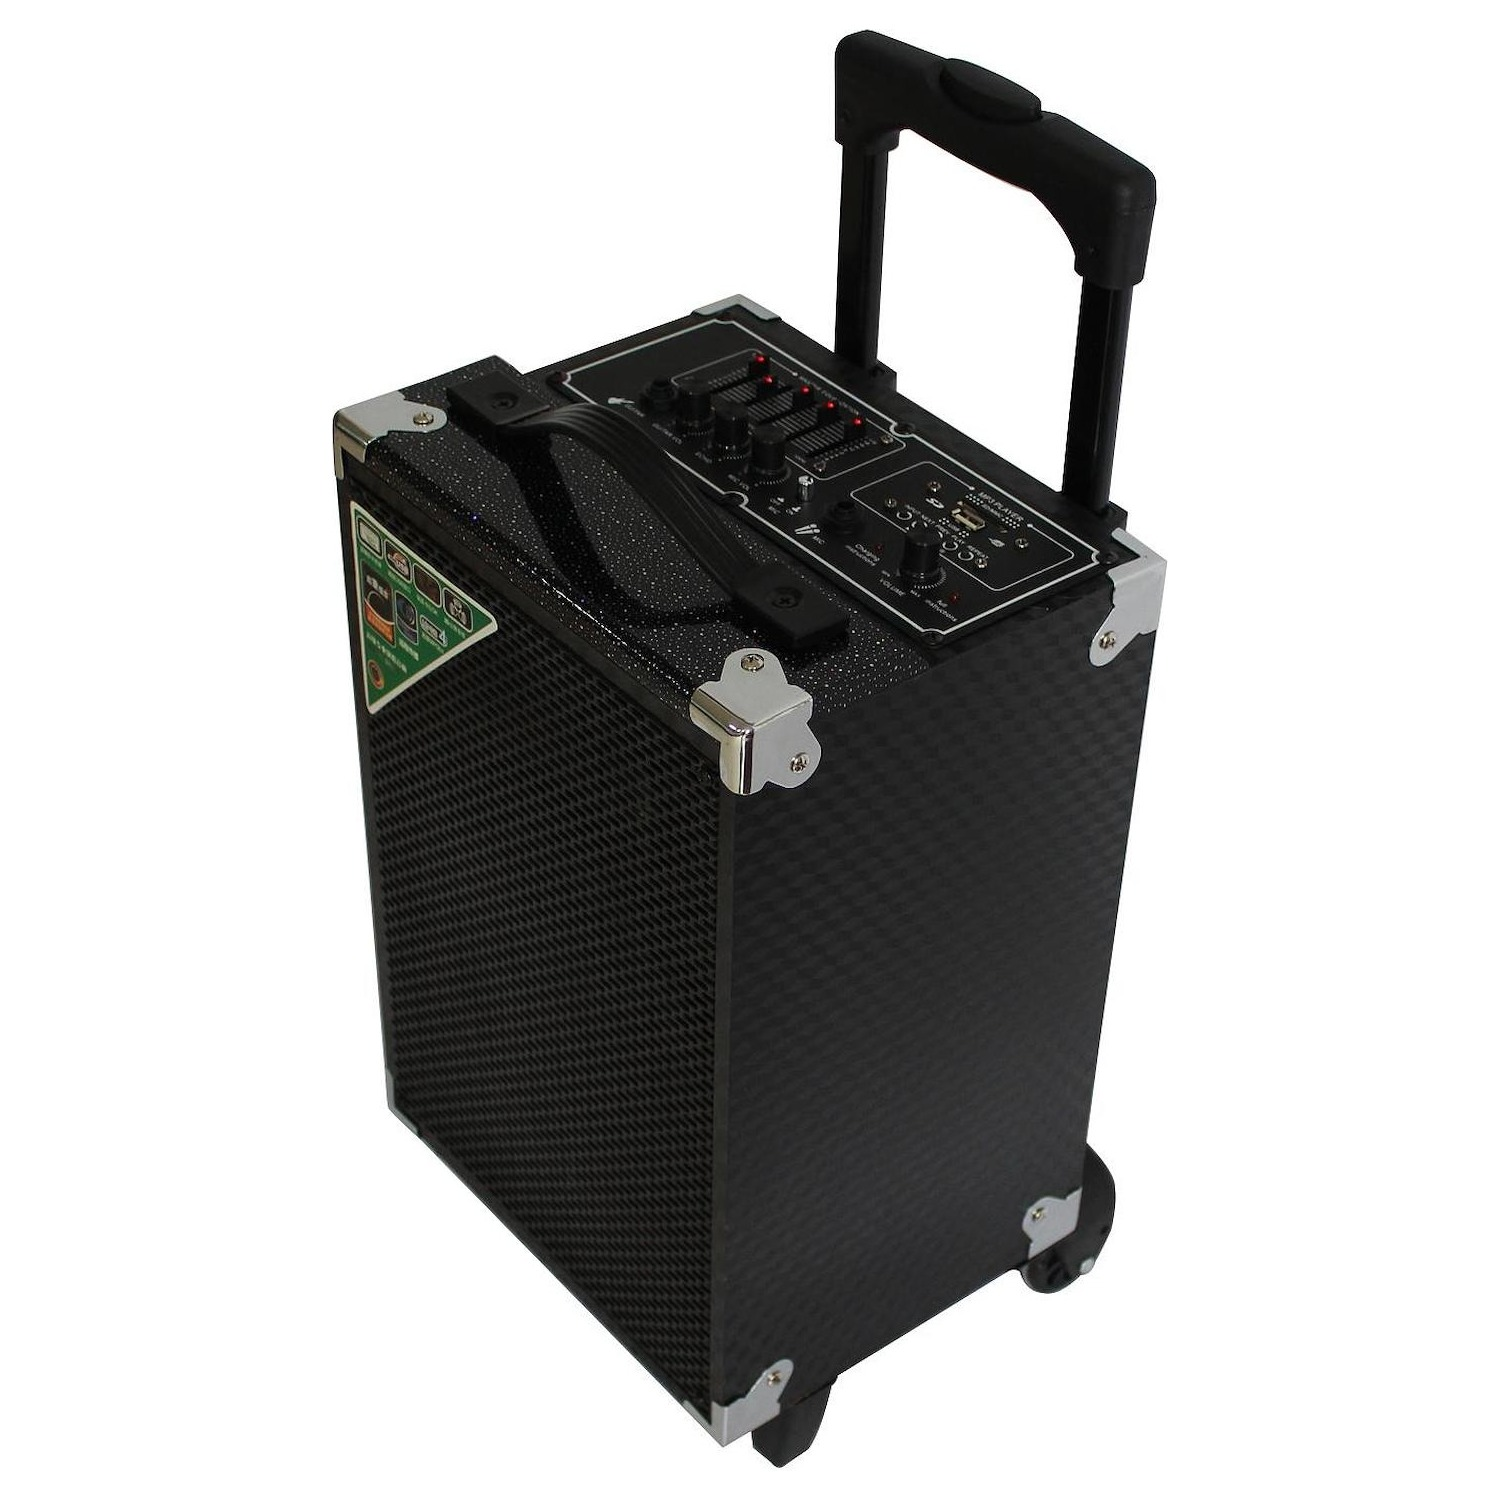 Immagine per Sistema audio multimediale portatile Trolley      Majestic TS74BT con microfono wireless da DIMOStore